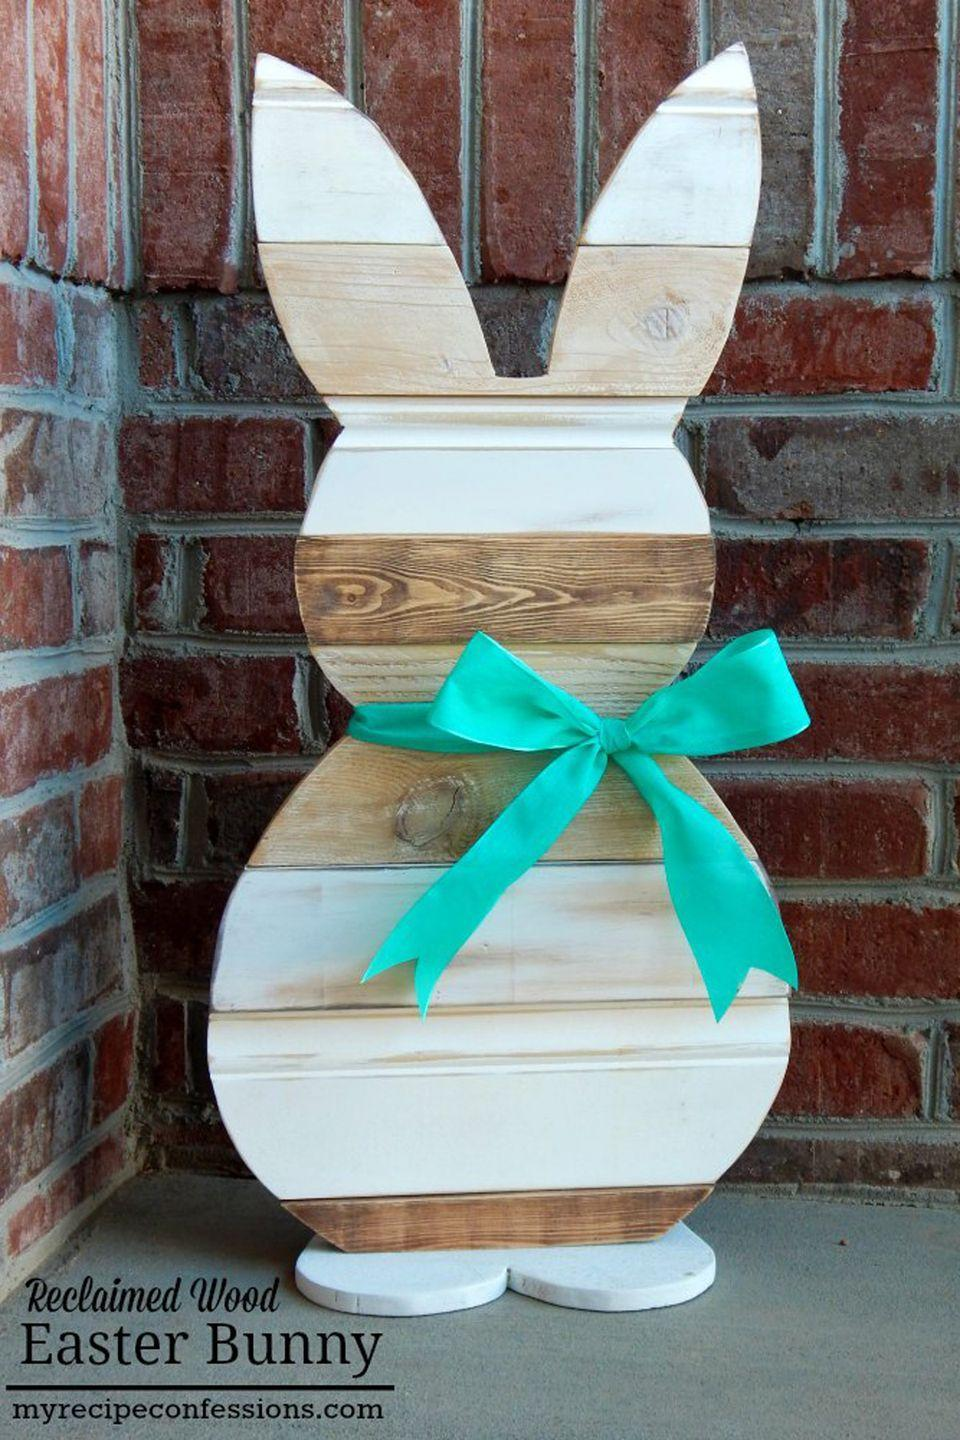 "<p>Step up your crafting game with this woodworking project. You'll need access to a jig saw for this DIY, but don't let that intimidate you—even novice crafters can nail this one.</p><p><strong>Get the tutorial at <a href=""http://myrecipeconfessions.com/projects/reclaimed-wood-easter-bunny/"" rel=""nofollow noopener"" target=""_blank"" data-ylk=""slk:My Recipe Confessions"" class=""link rapid-noclick-resp"">My Recipe Confessions</a>.</strong></p>"